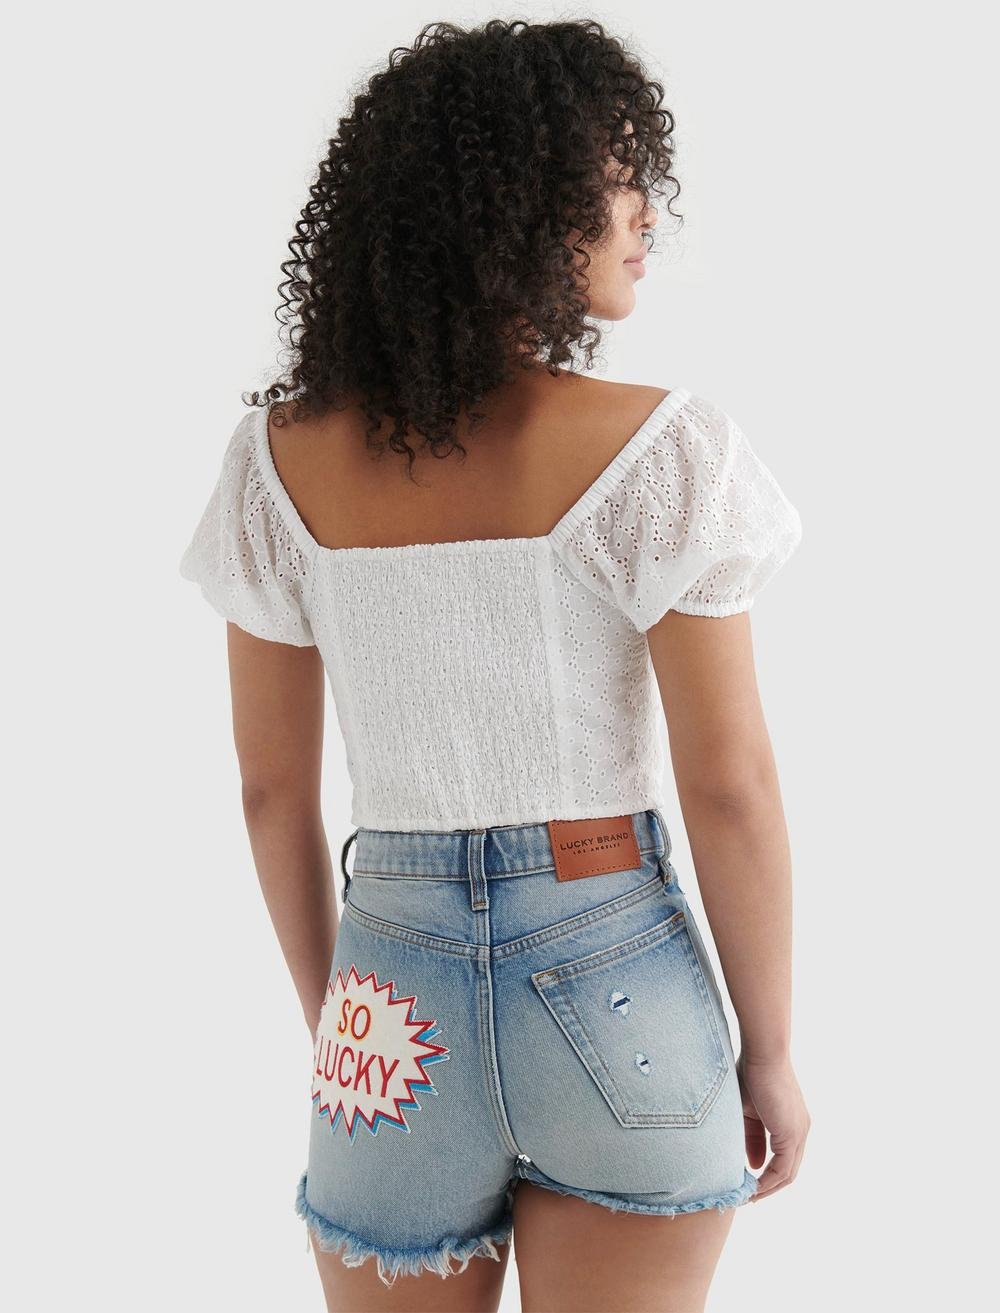 LACE SWEETHEART CROP TOP, image 5